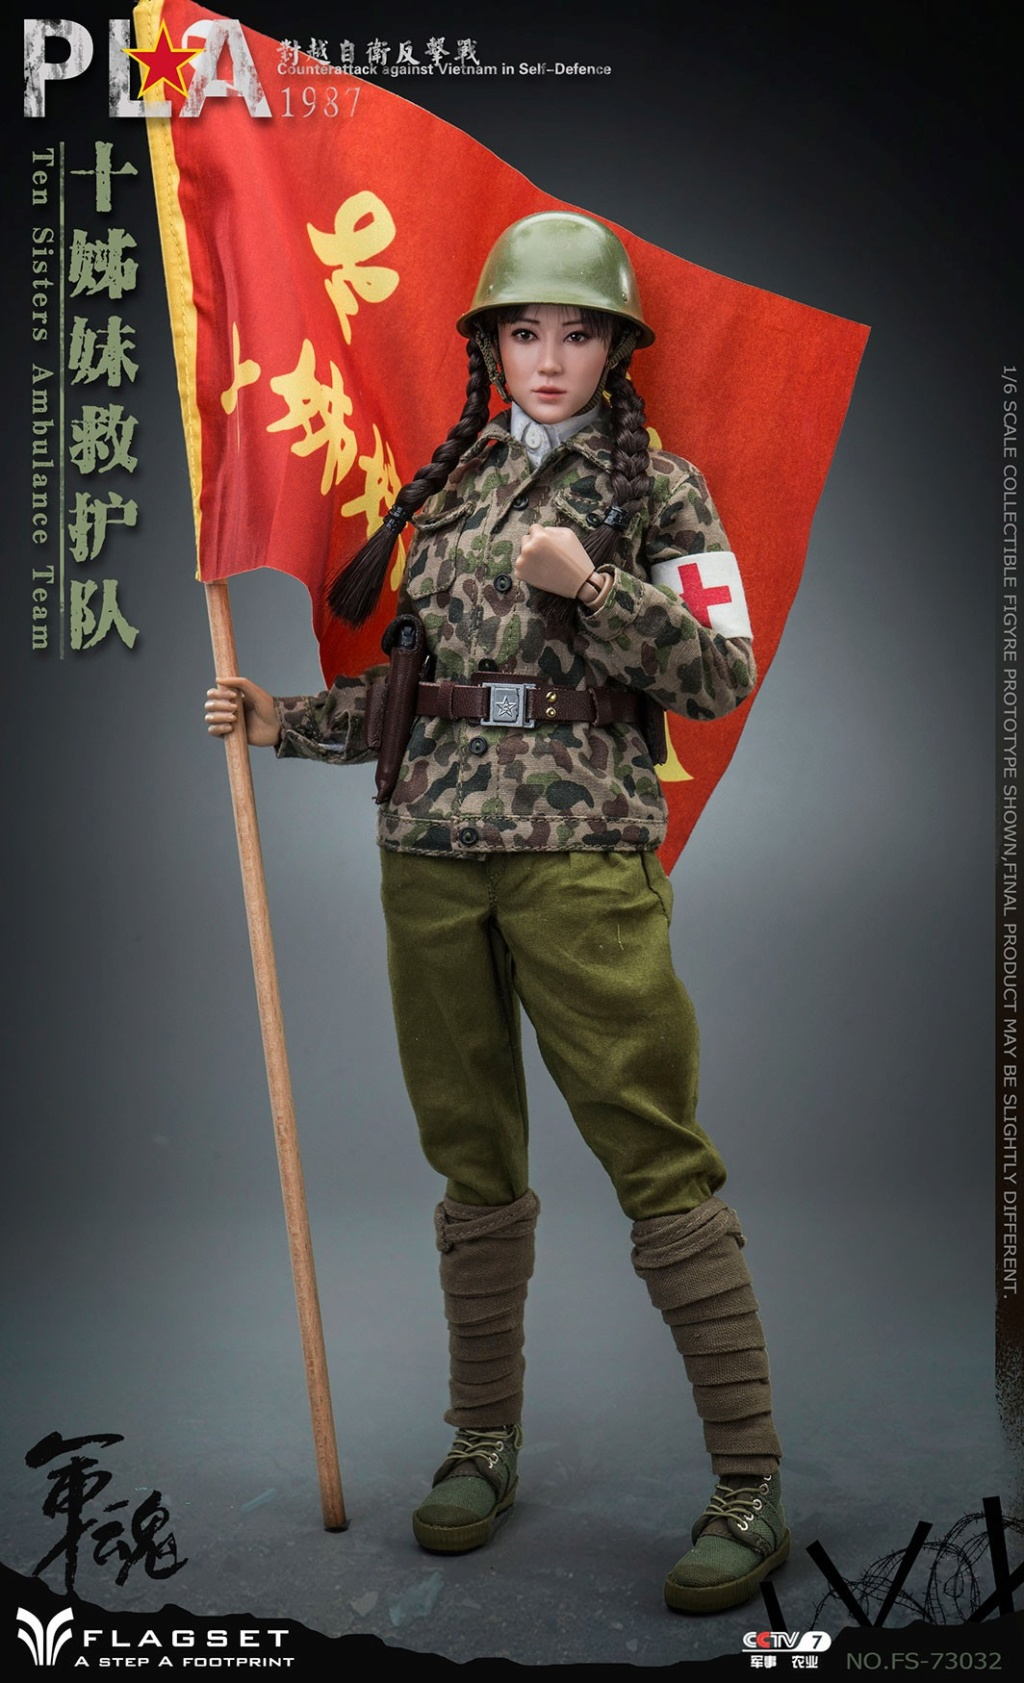 CounterAttack - NEW PRODUCT: Flagset: 1/6 counterattack against Vietnam-female soldiers of the ten sisters rescue team of the Chinese People's Liberation Army (FS73032#) 06540510